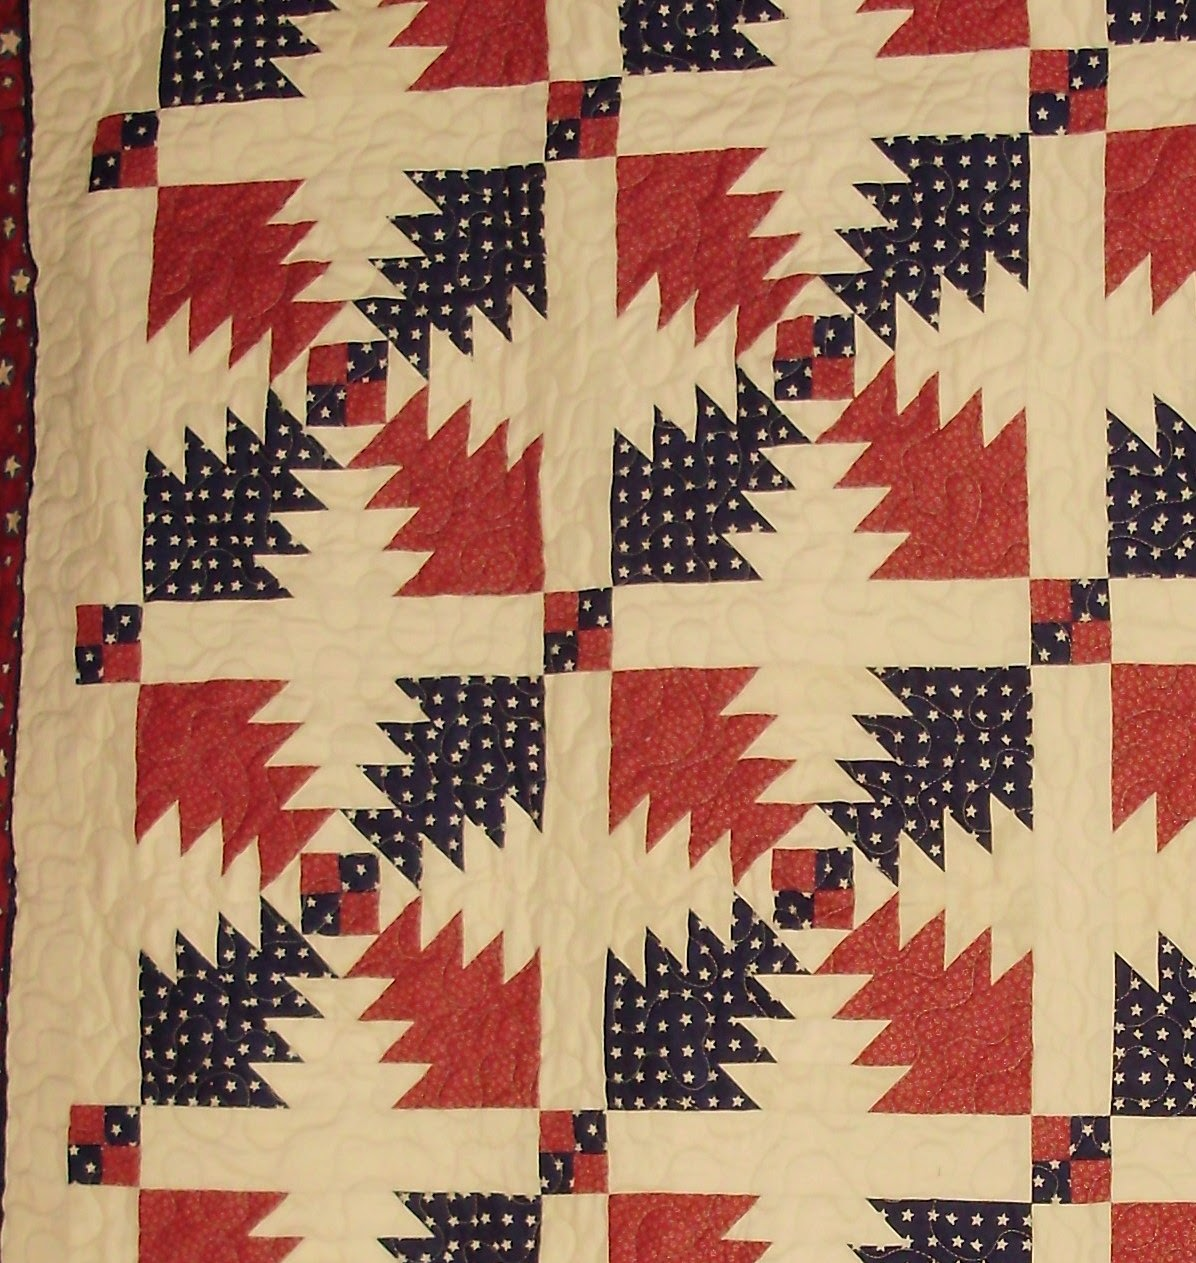 Patriotic Quilt, Red, White and Blue Quilt, Sashings and Cornerstones, Pieced Cornerstones, Pineapple Quilt